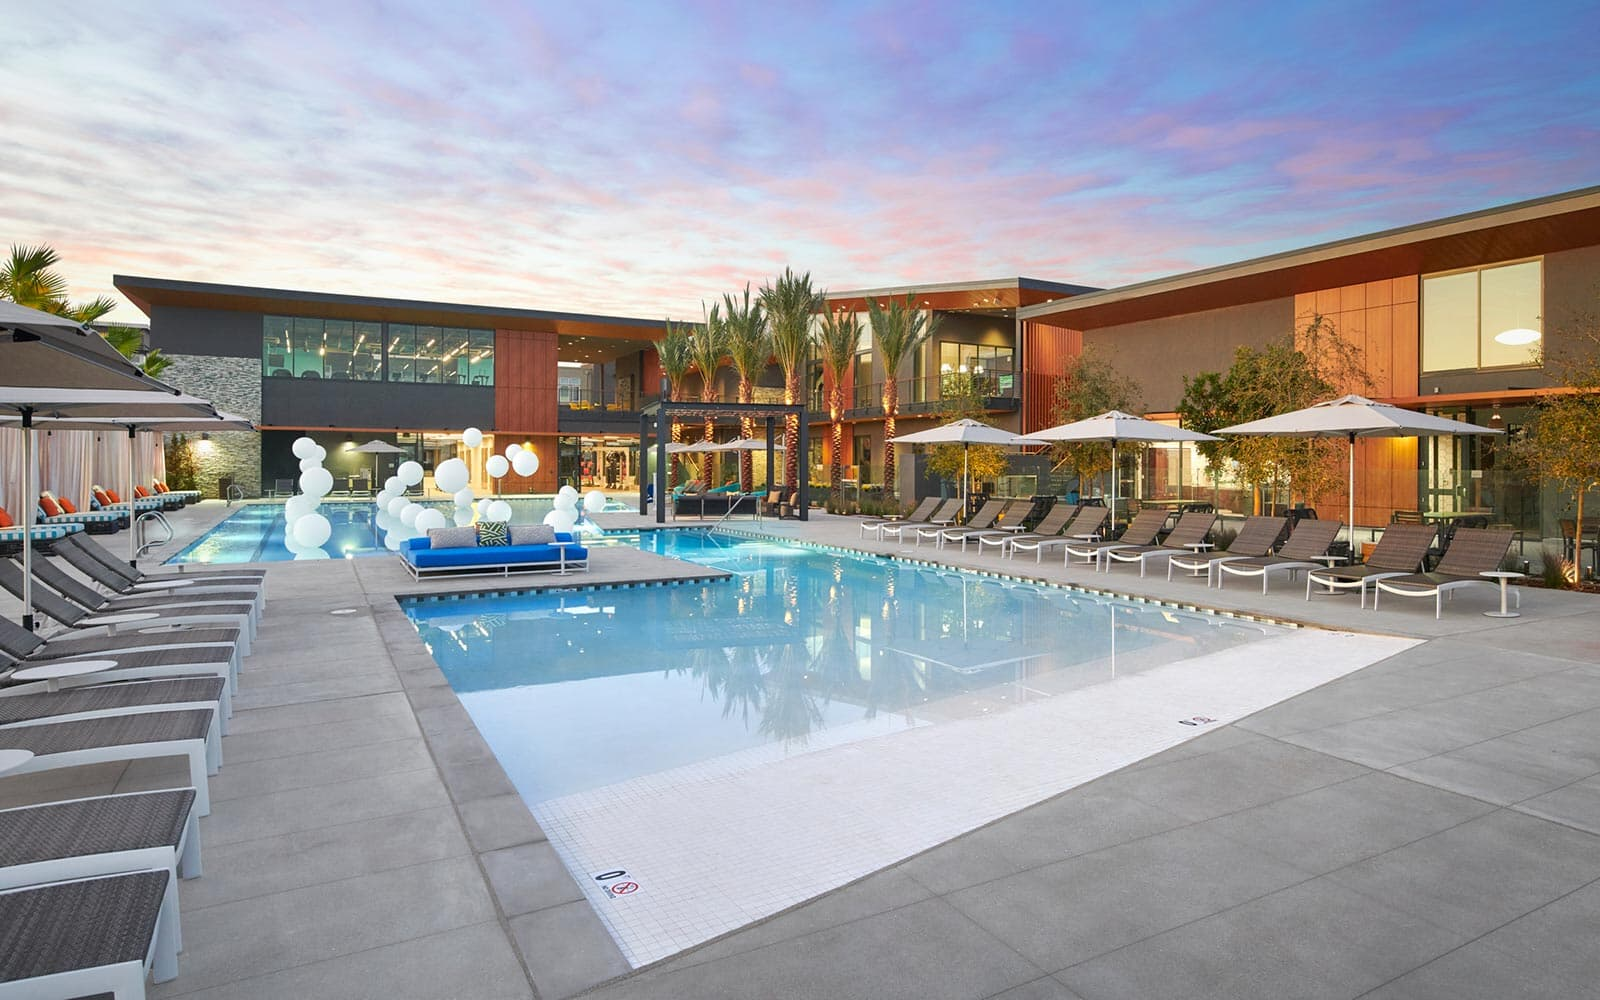 Rec center pool at Boulevard in Dublin, CA by Brookfield Residential